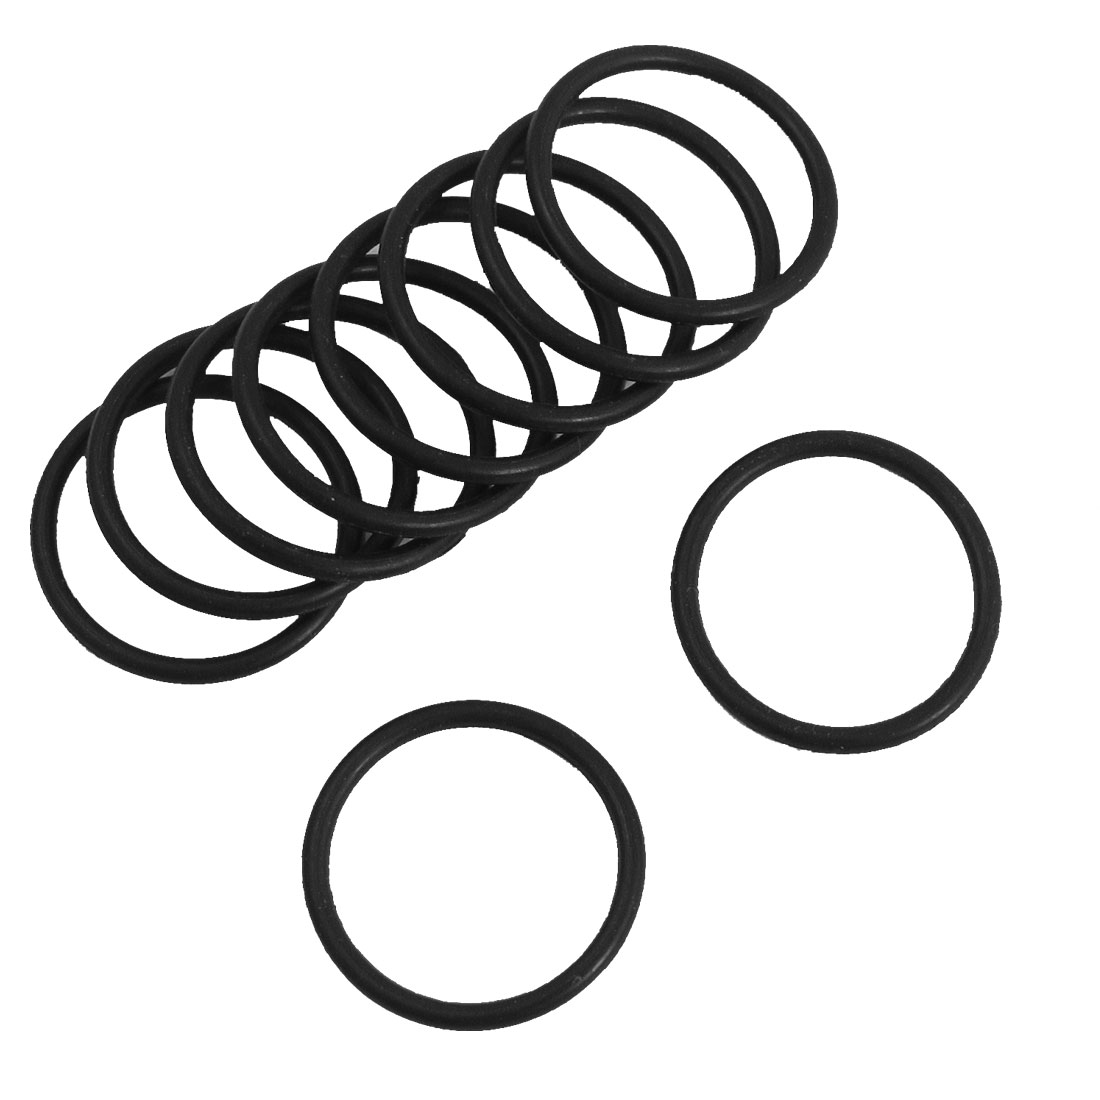 10PCS Black Rubber Oil Filter Seal O Rings Gaskets 11mm x 7mm x 2mm